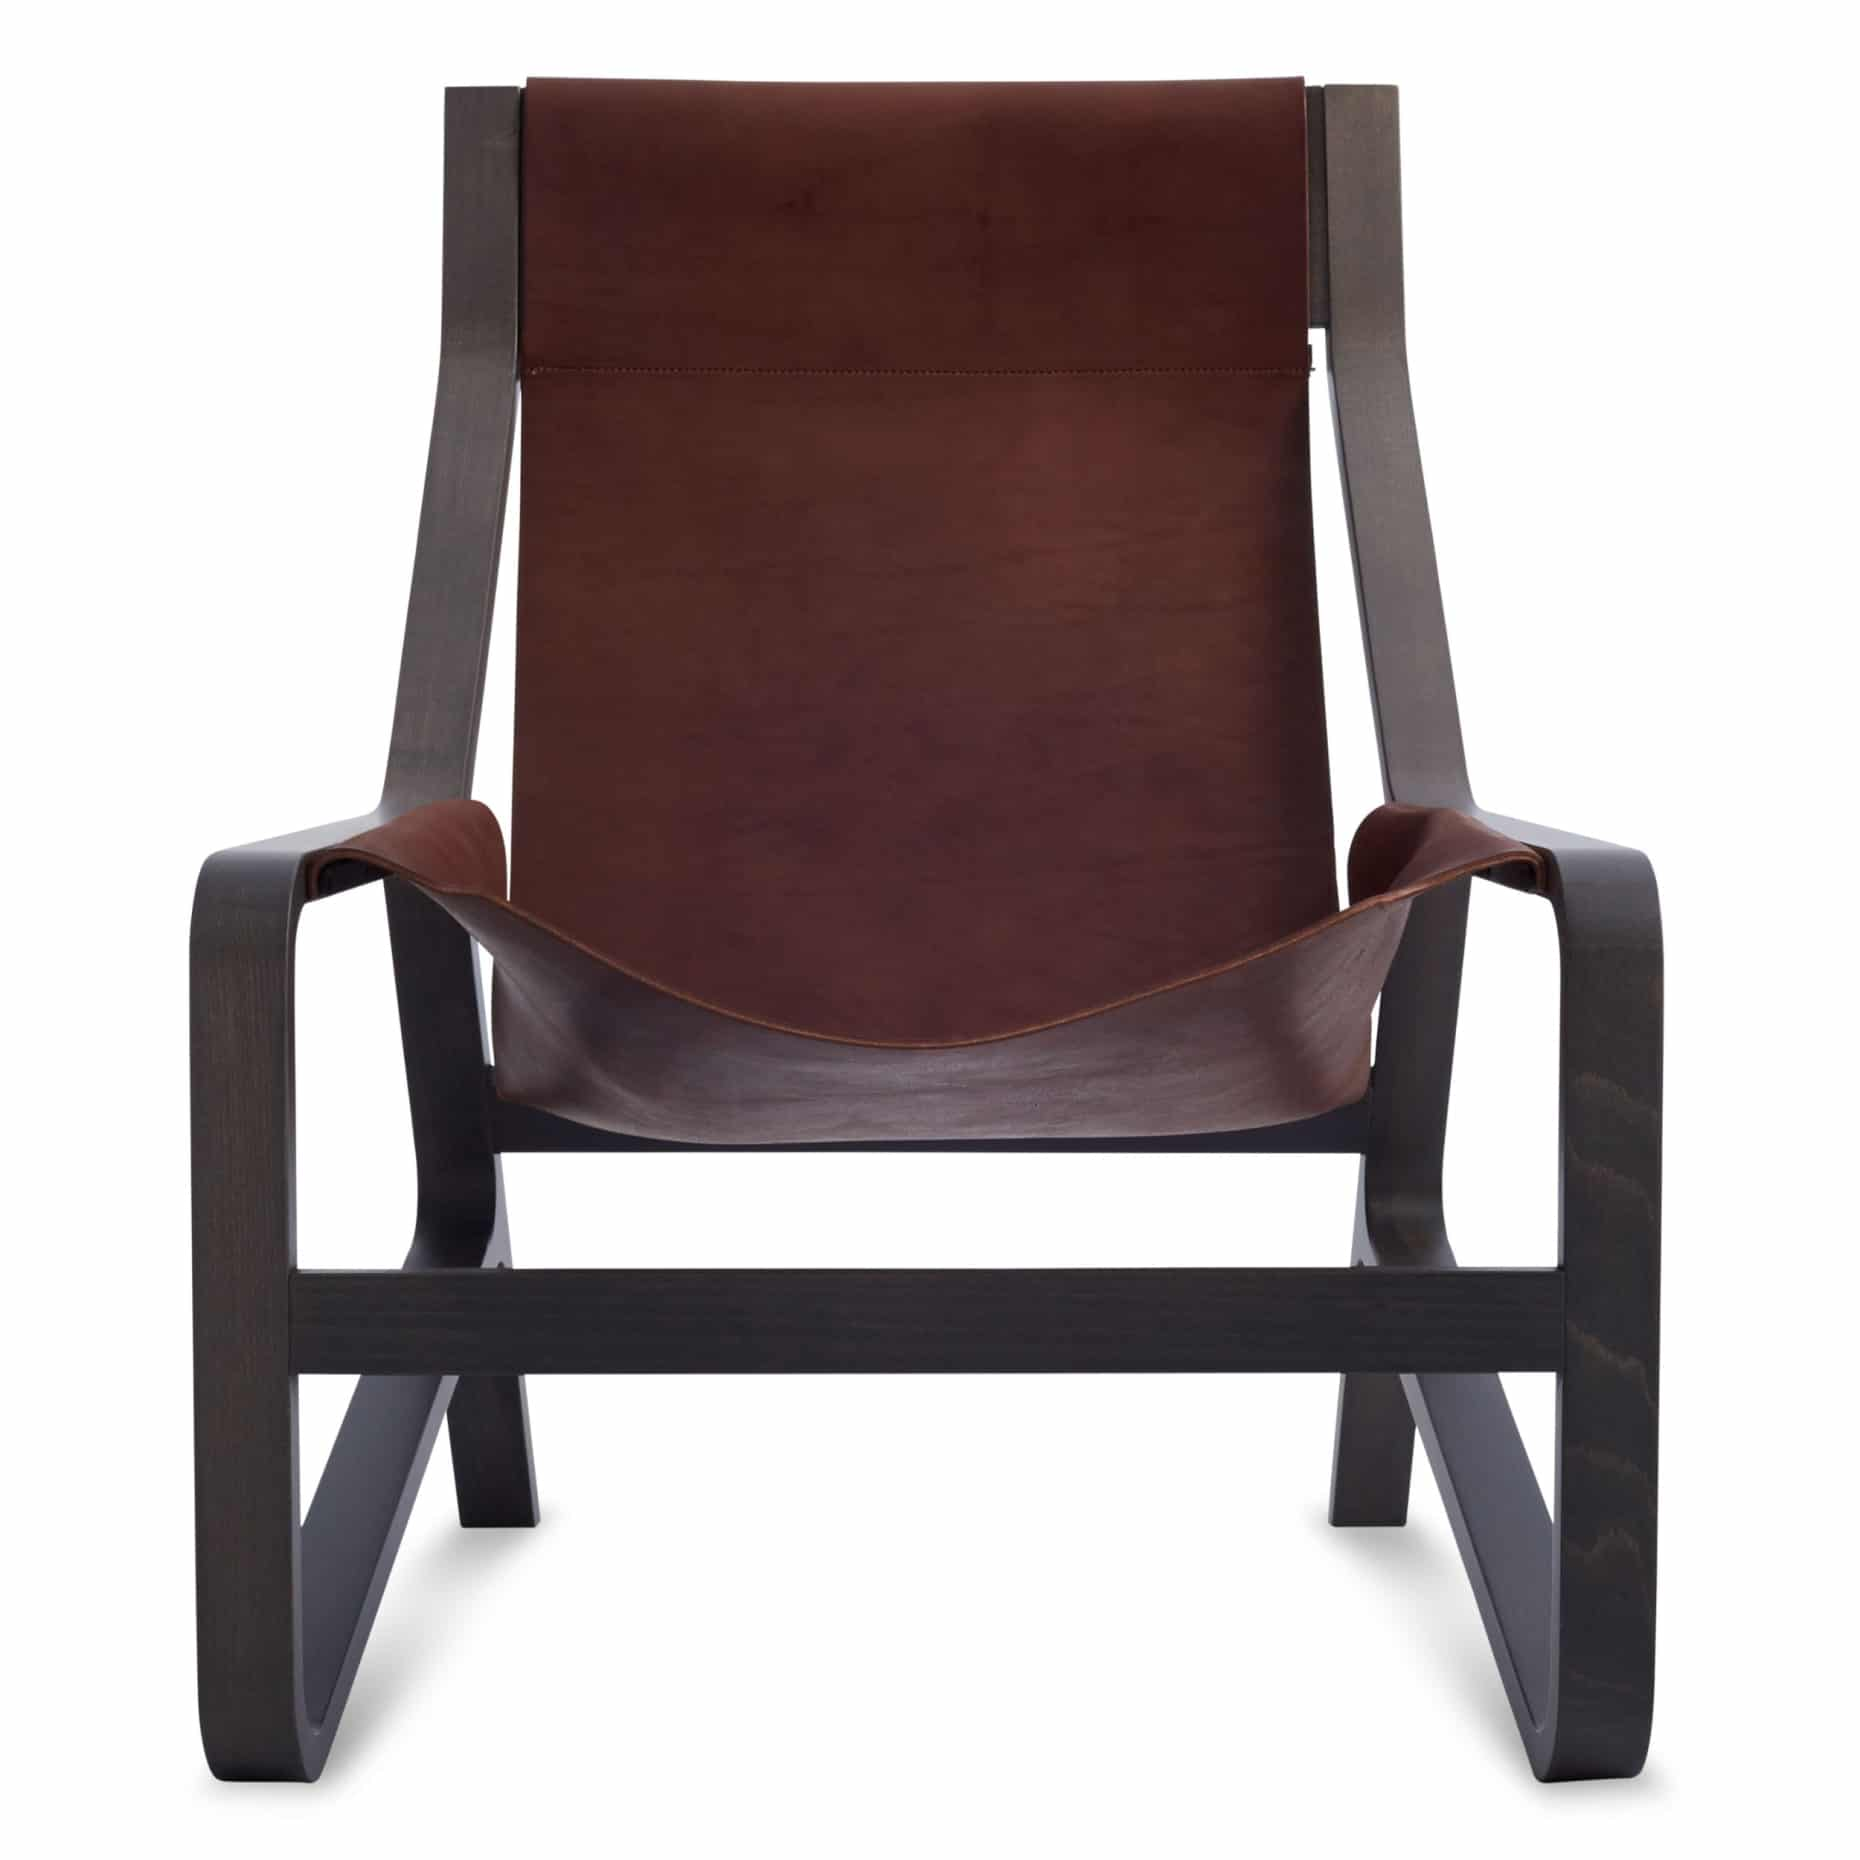 tr1 lchair sk toro lounge chair chocolate smoke